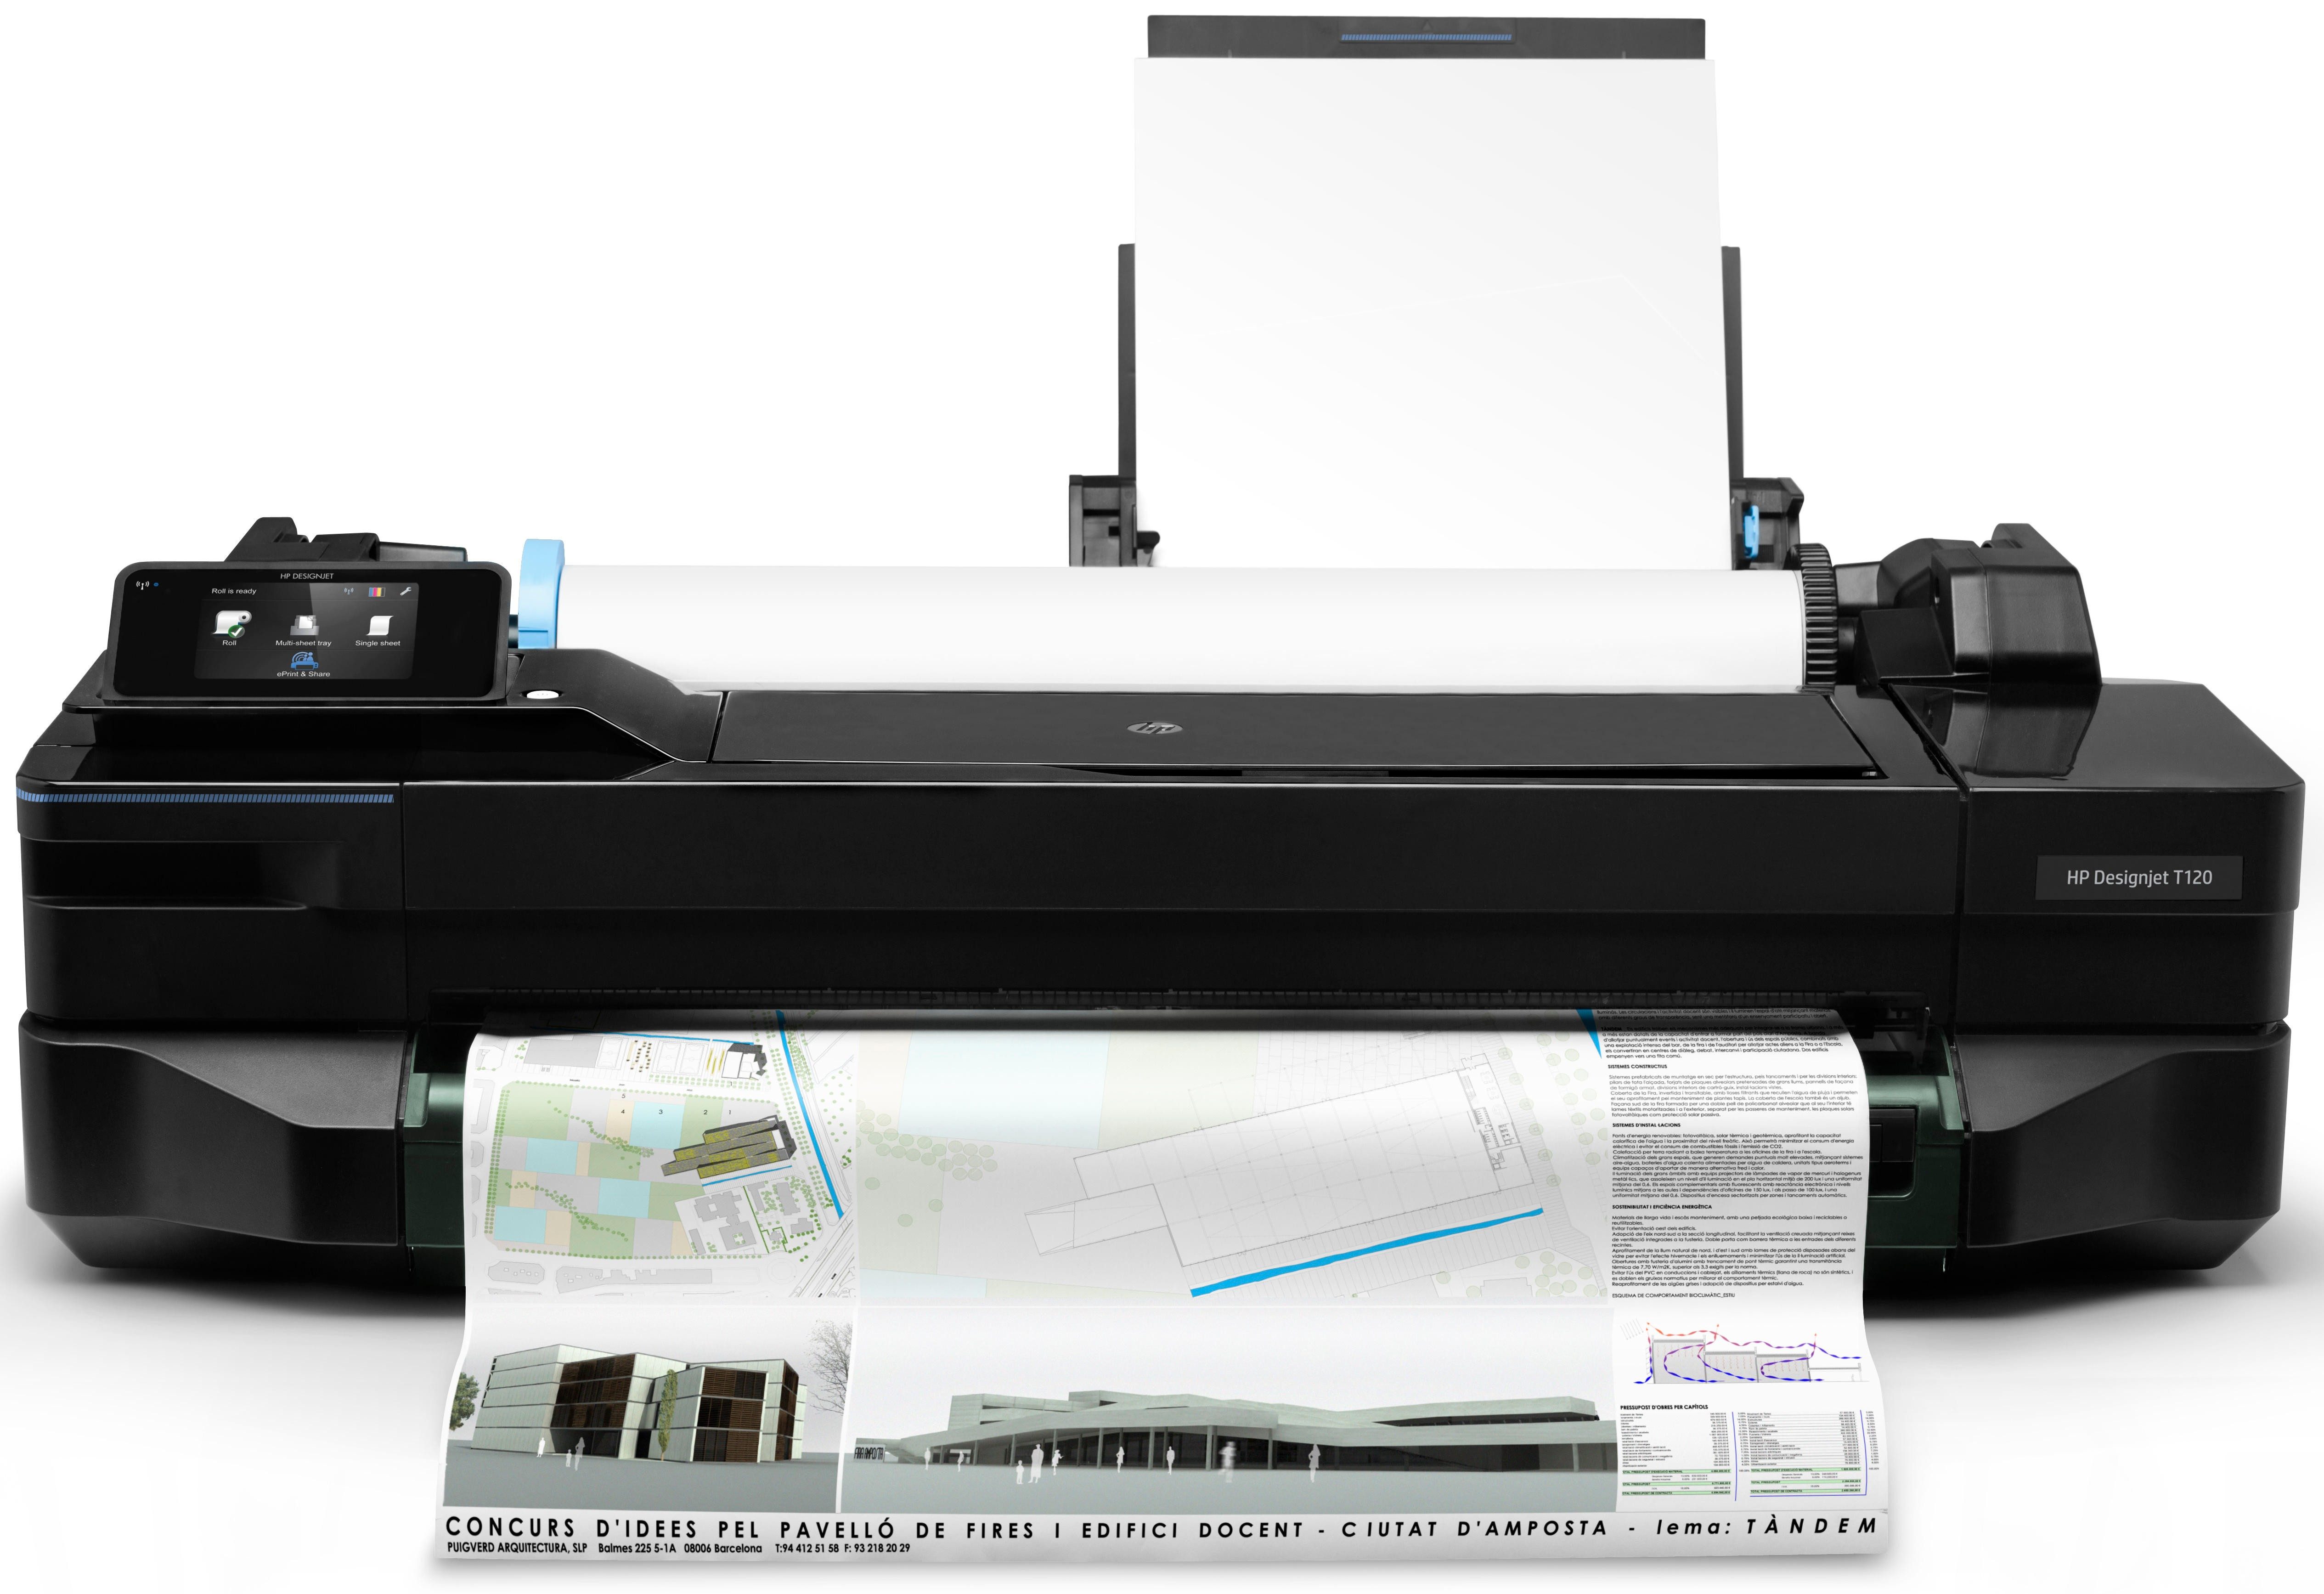 4 separate inks- Res 1200x1200dpi- Media handling: sheet feed- roll feed- input tray- automatic cutter- 256MB memory-  Network- Wi-FI- E-print- USB2.0  Supplies : 711 Black 711 Color